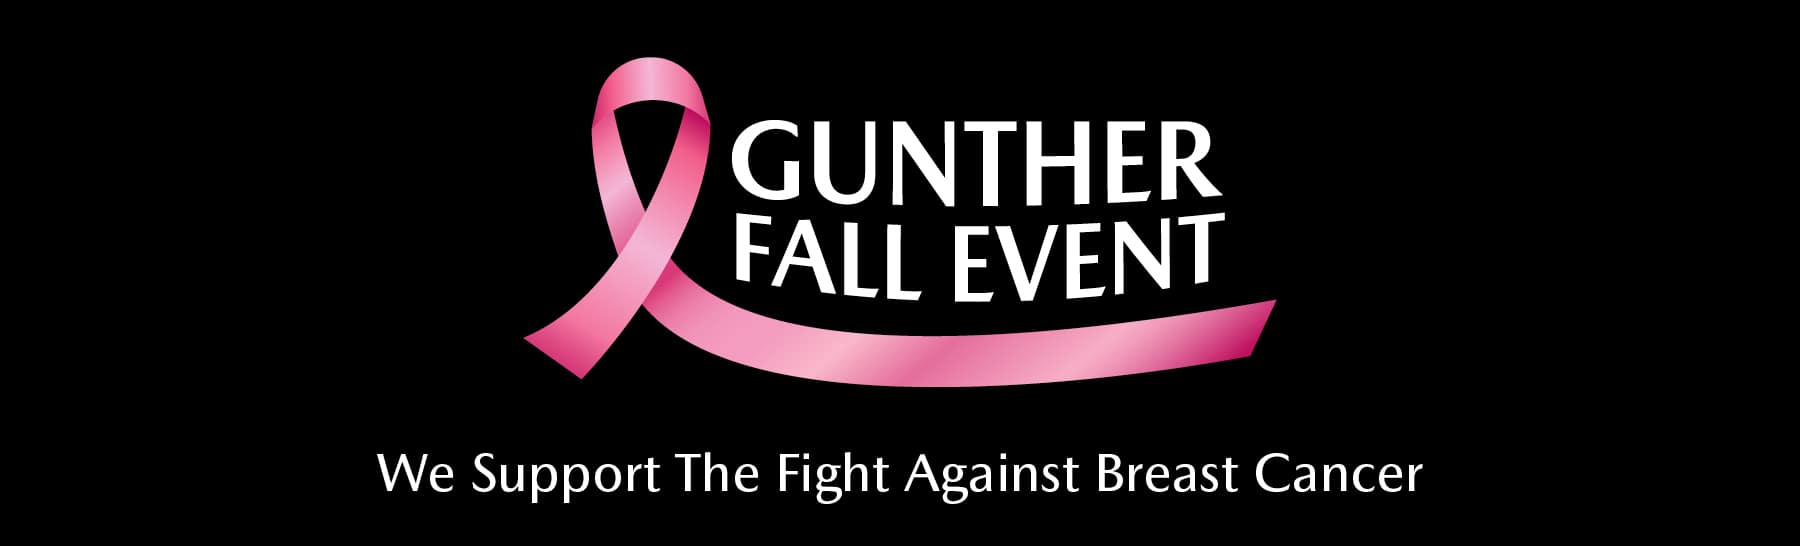 Gunther Fall Event. We Support The Fight Against Breast Cancer.